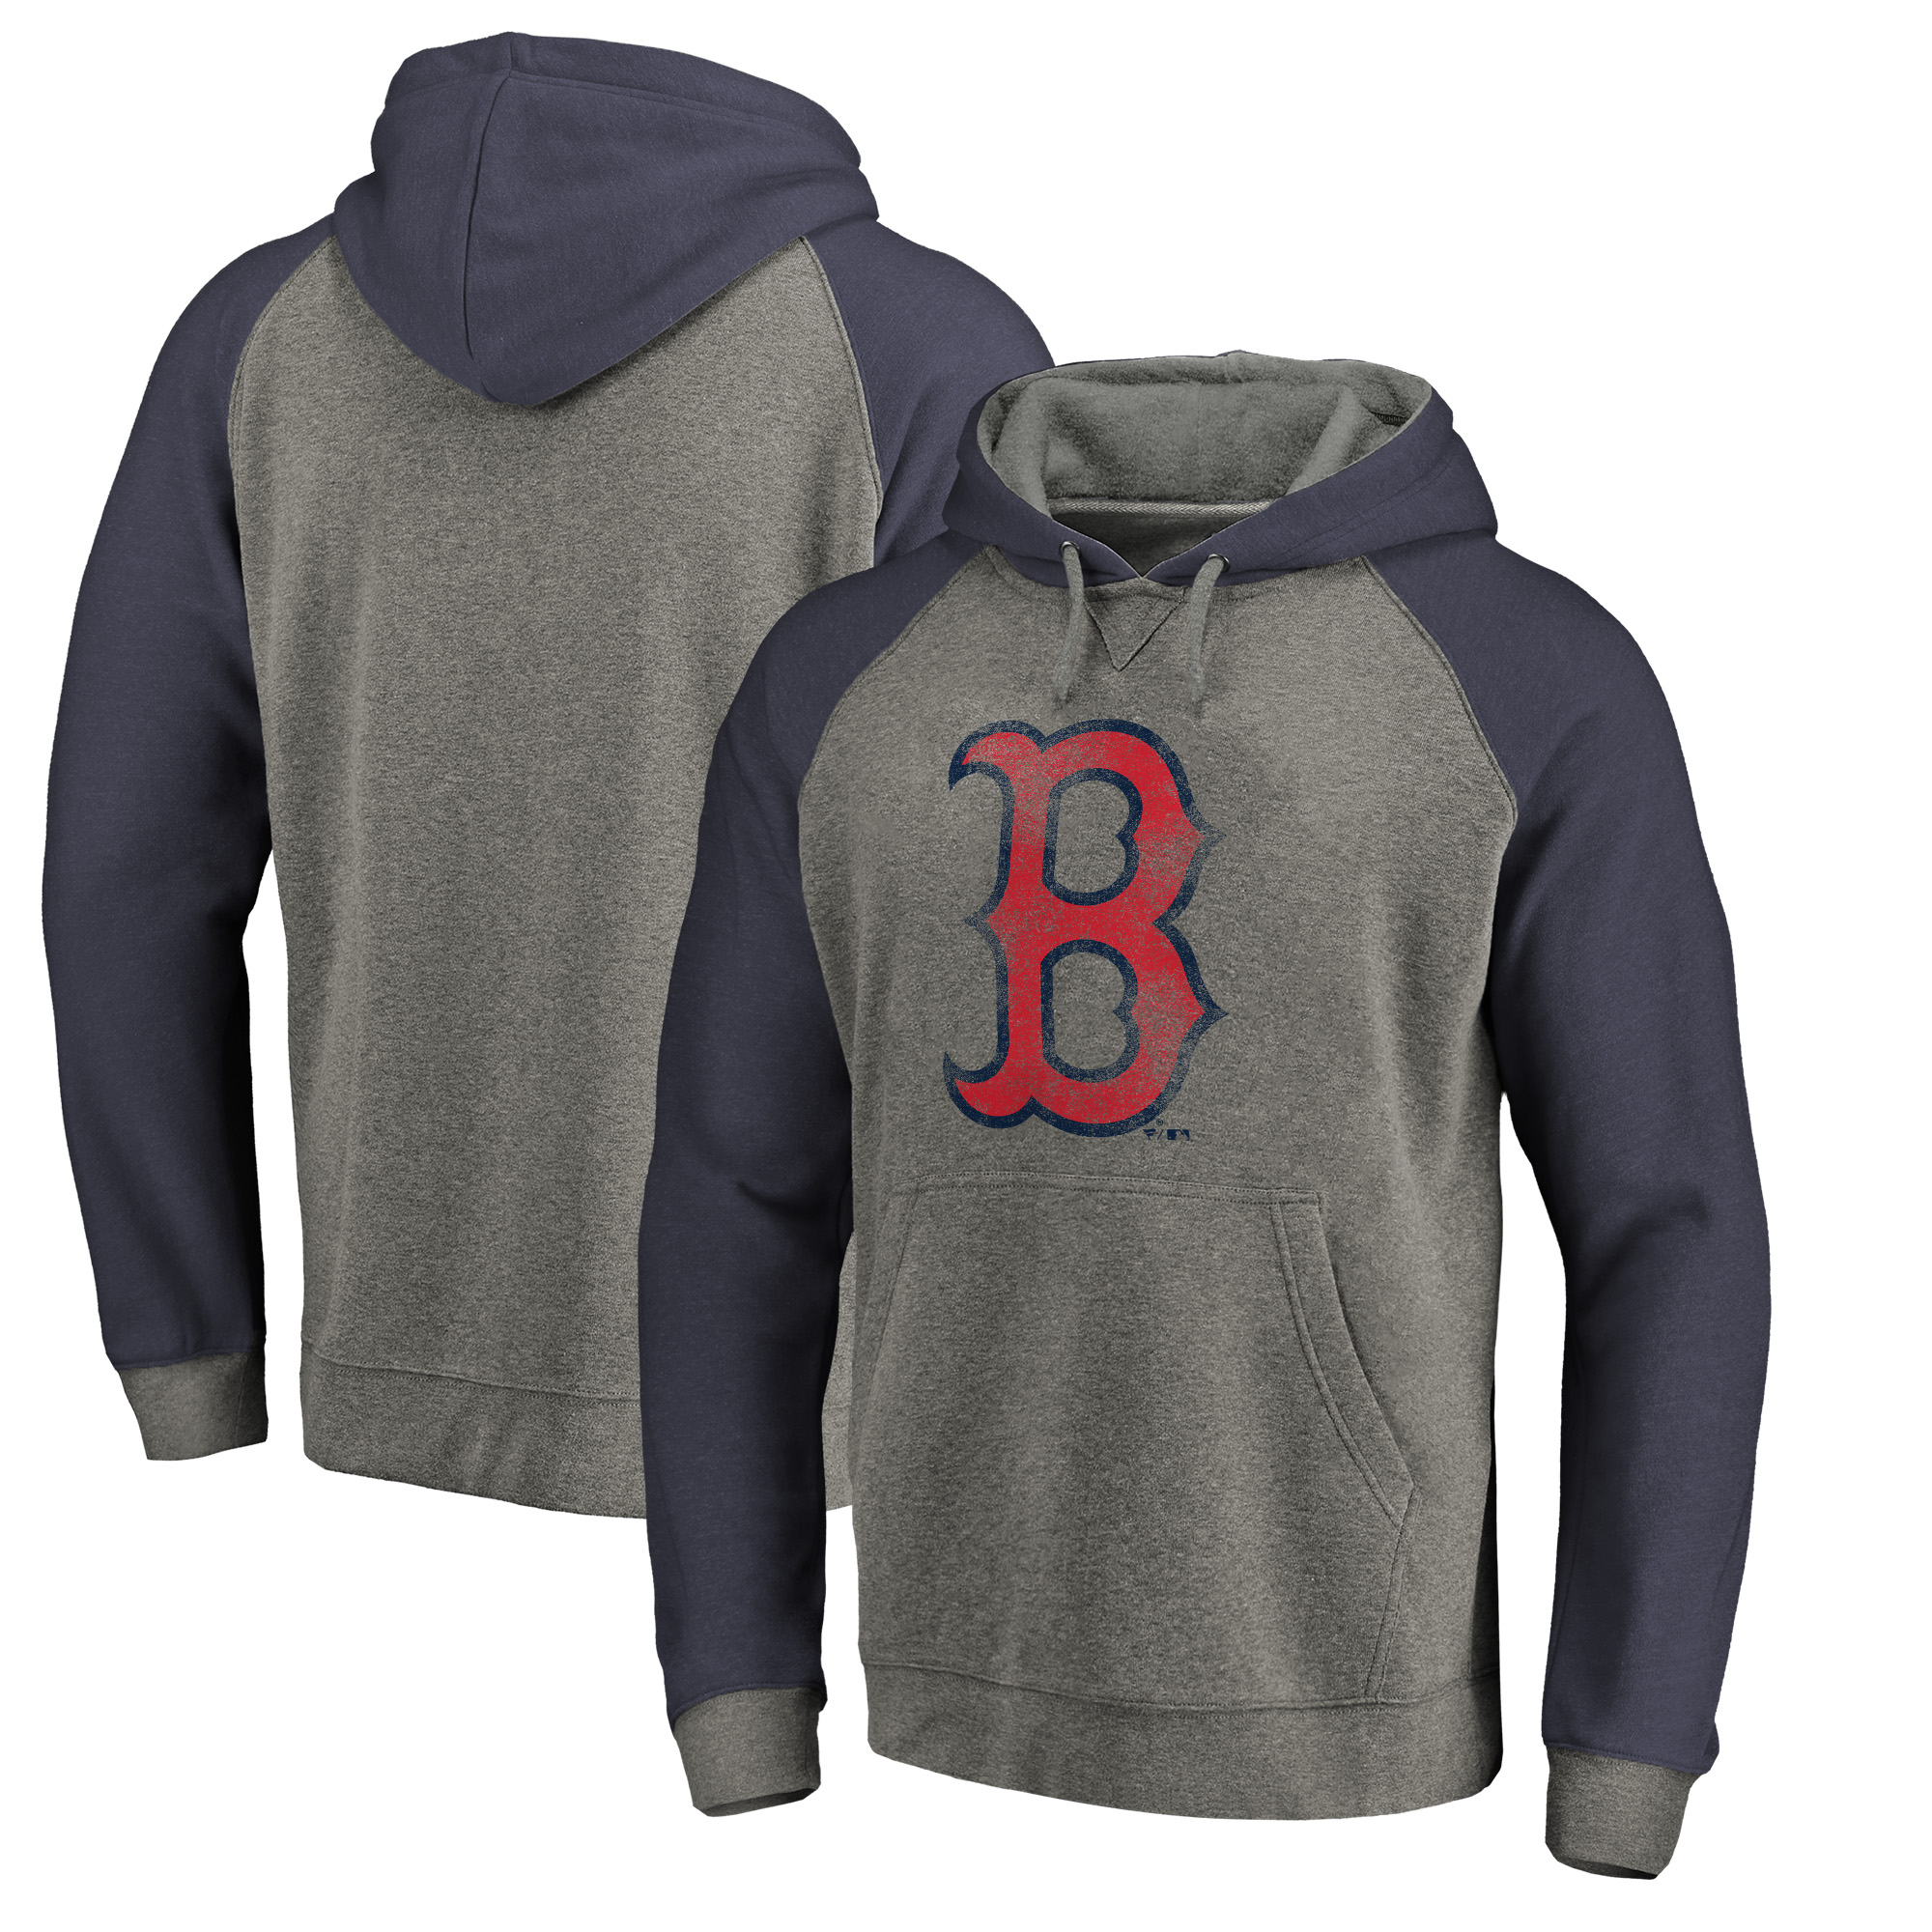 Boston Red Sox Fanatics Branded Distressed Team Logo Tri-Blend Raglan Pullover Hoodie - Gray/Navy